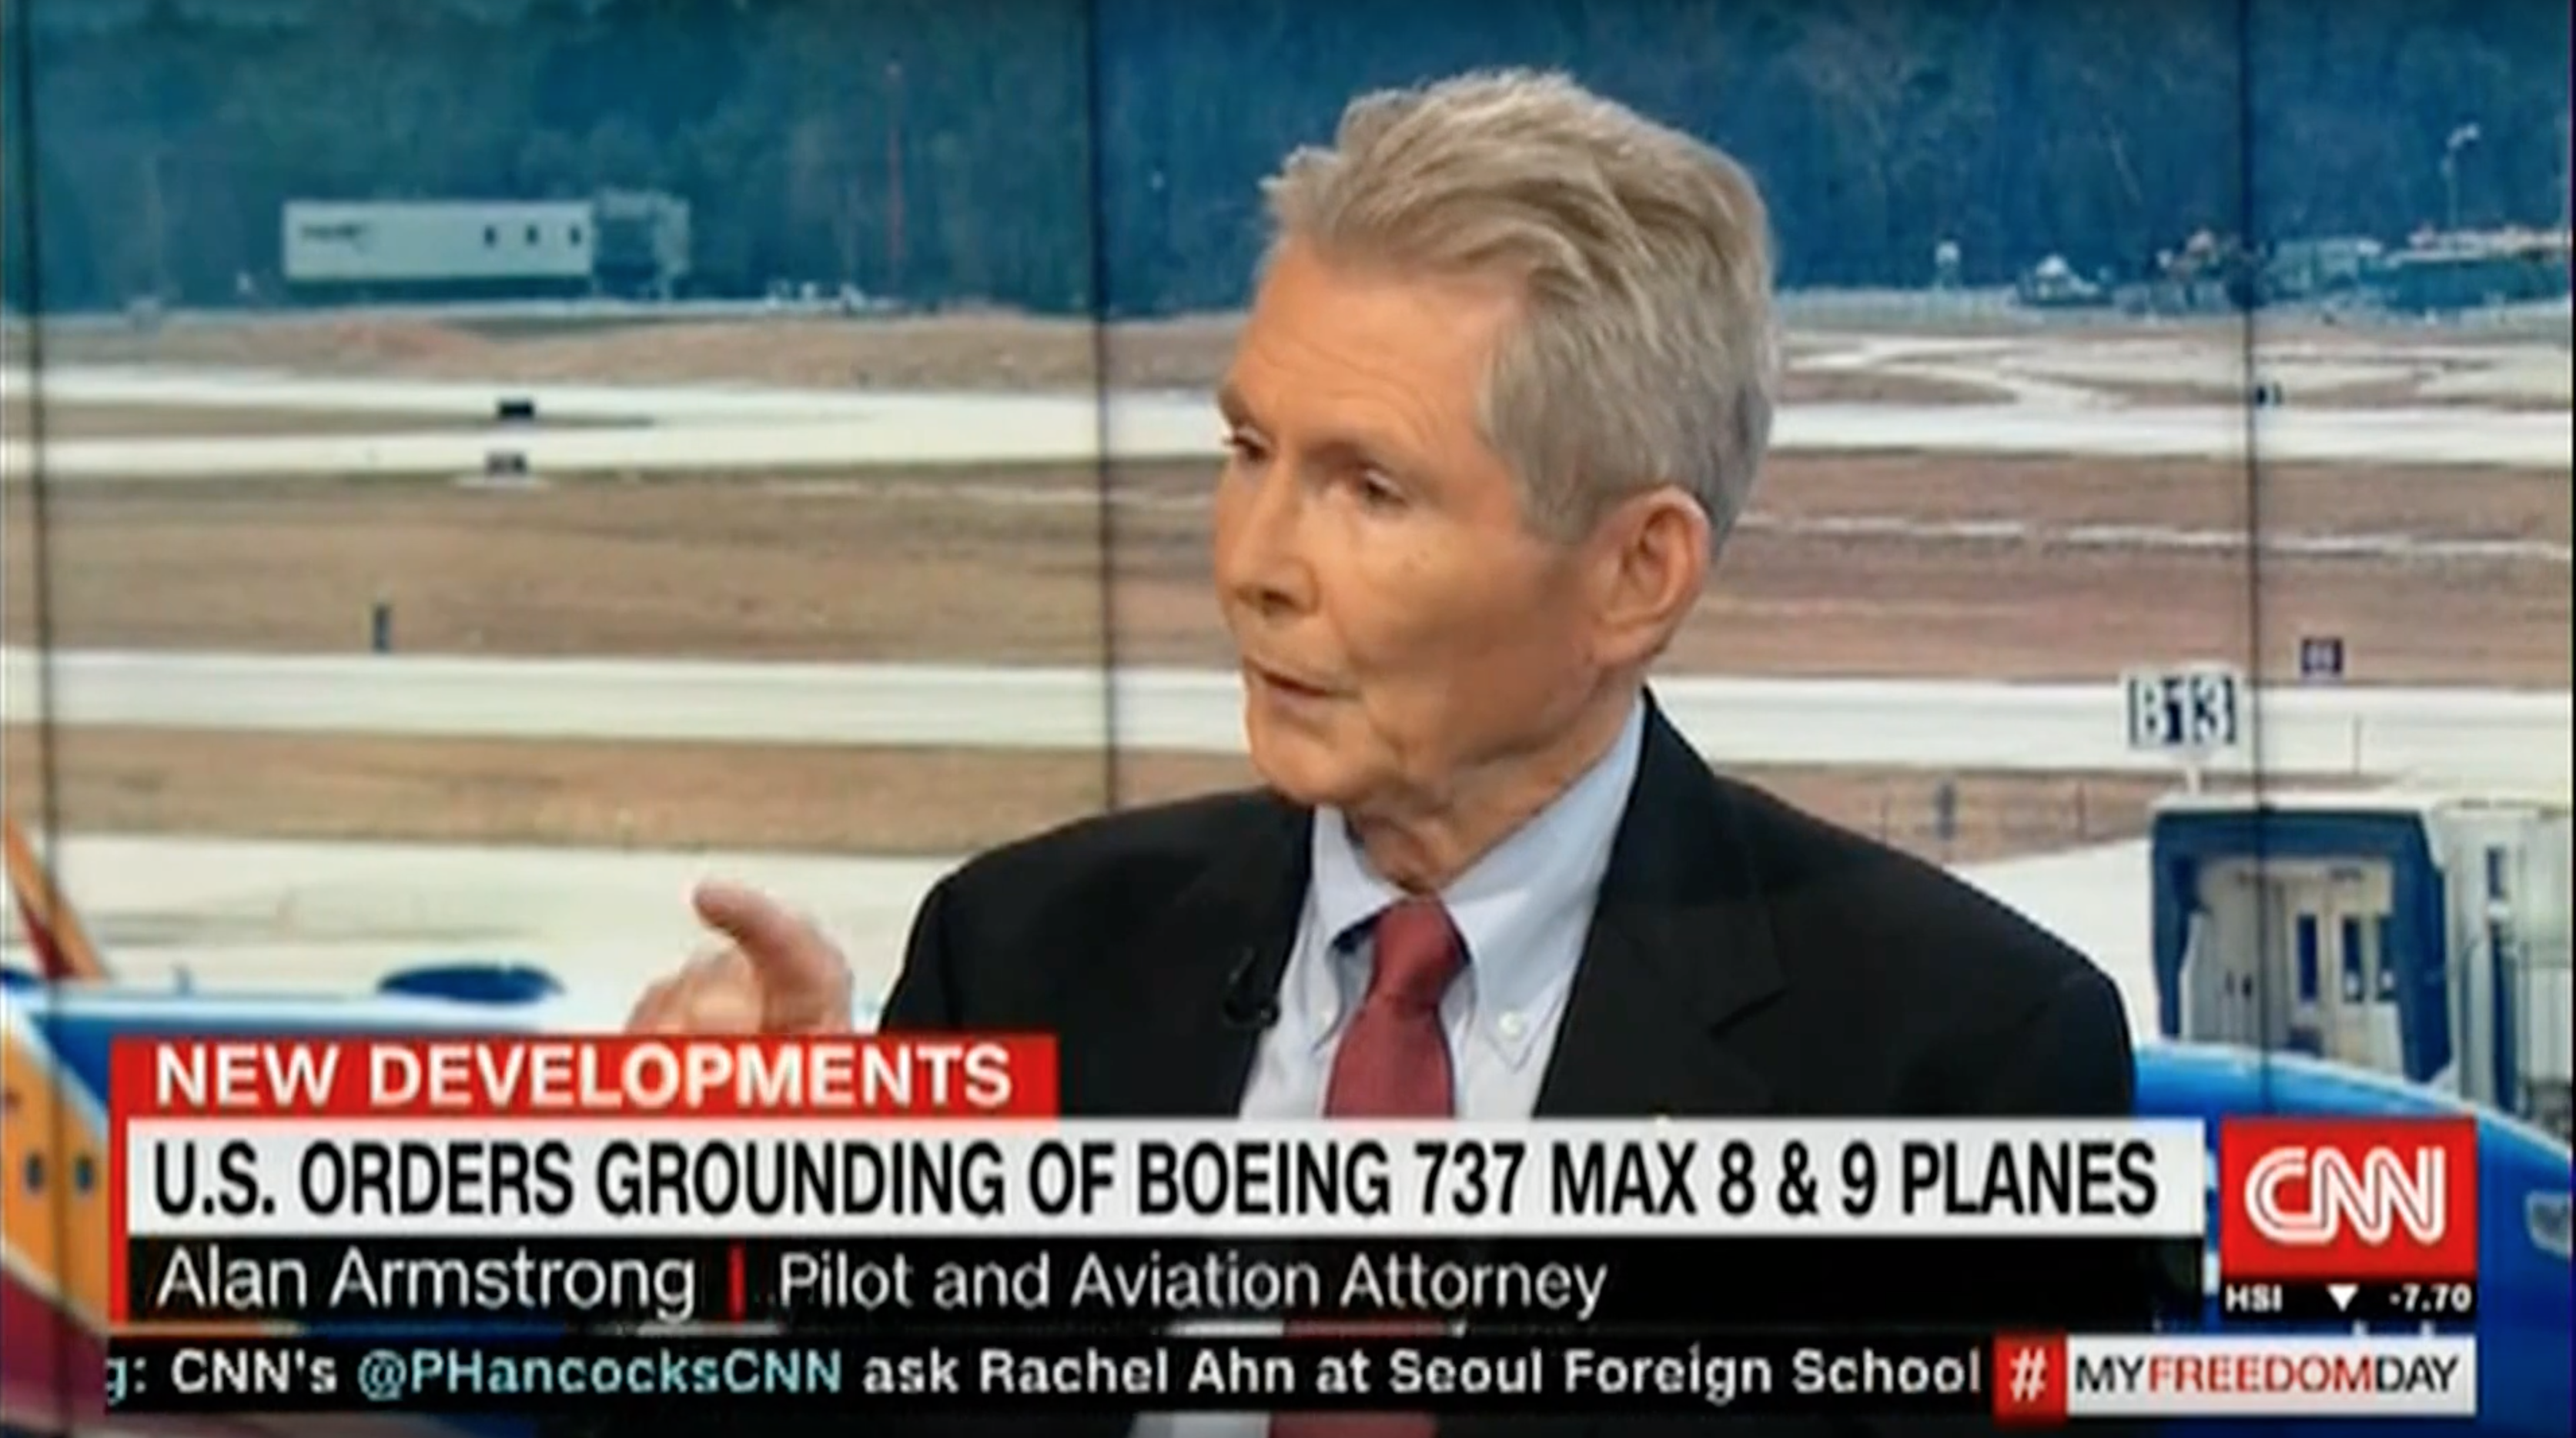 Interview on CNN about recent Boeing 737 max 8 crashes